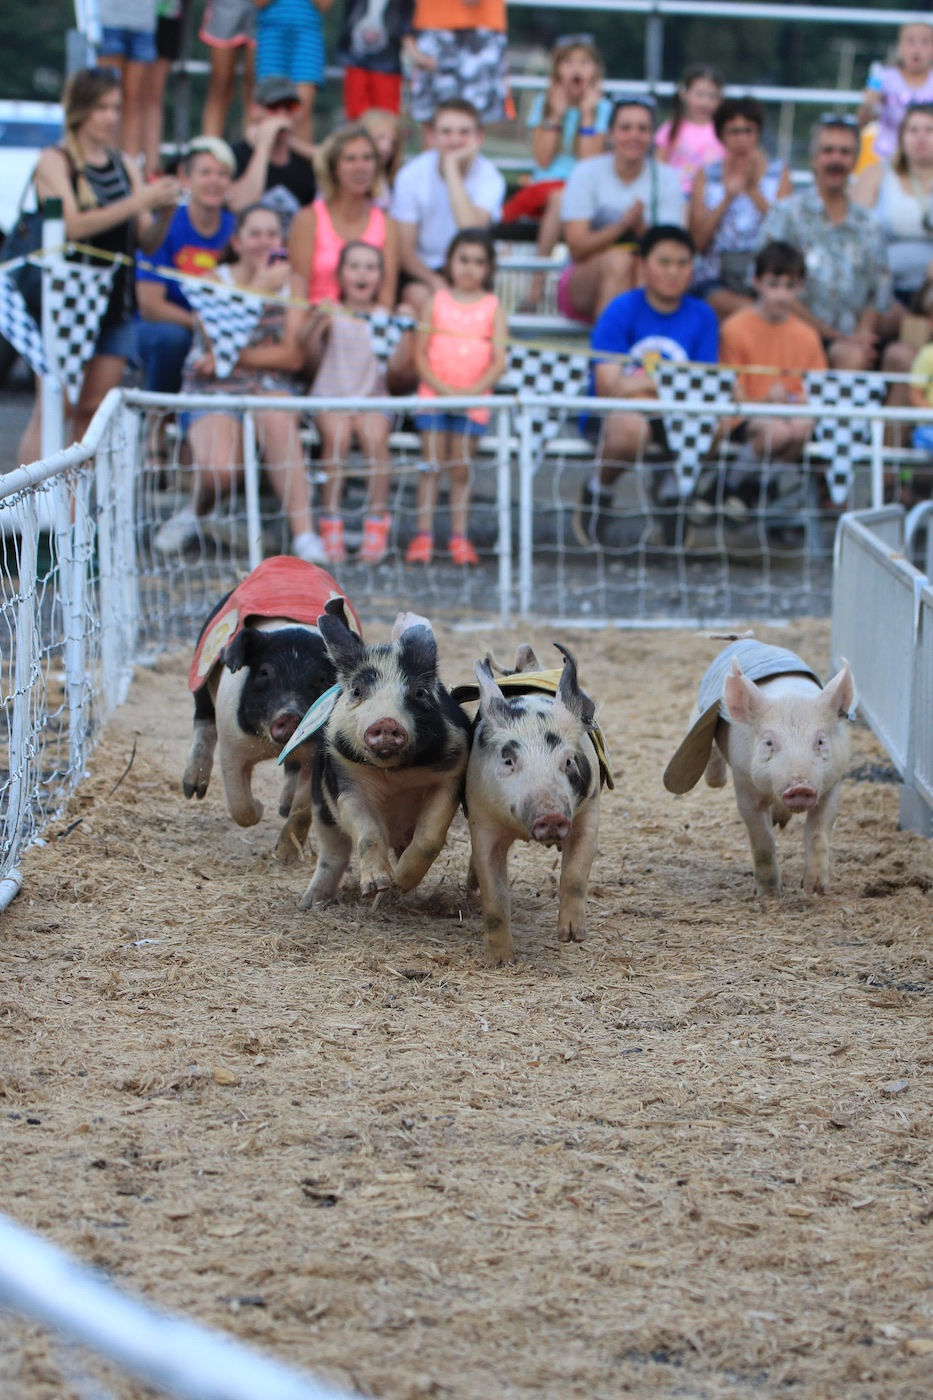 Pig Racing at the County Fair